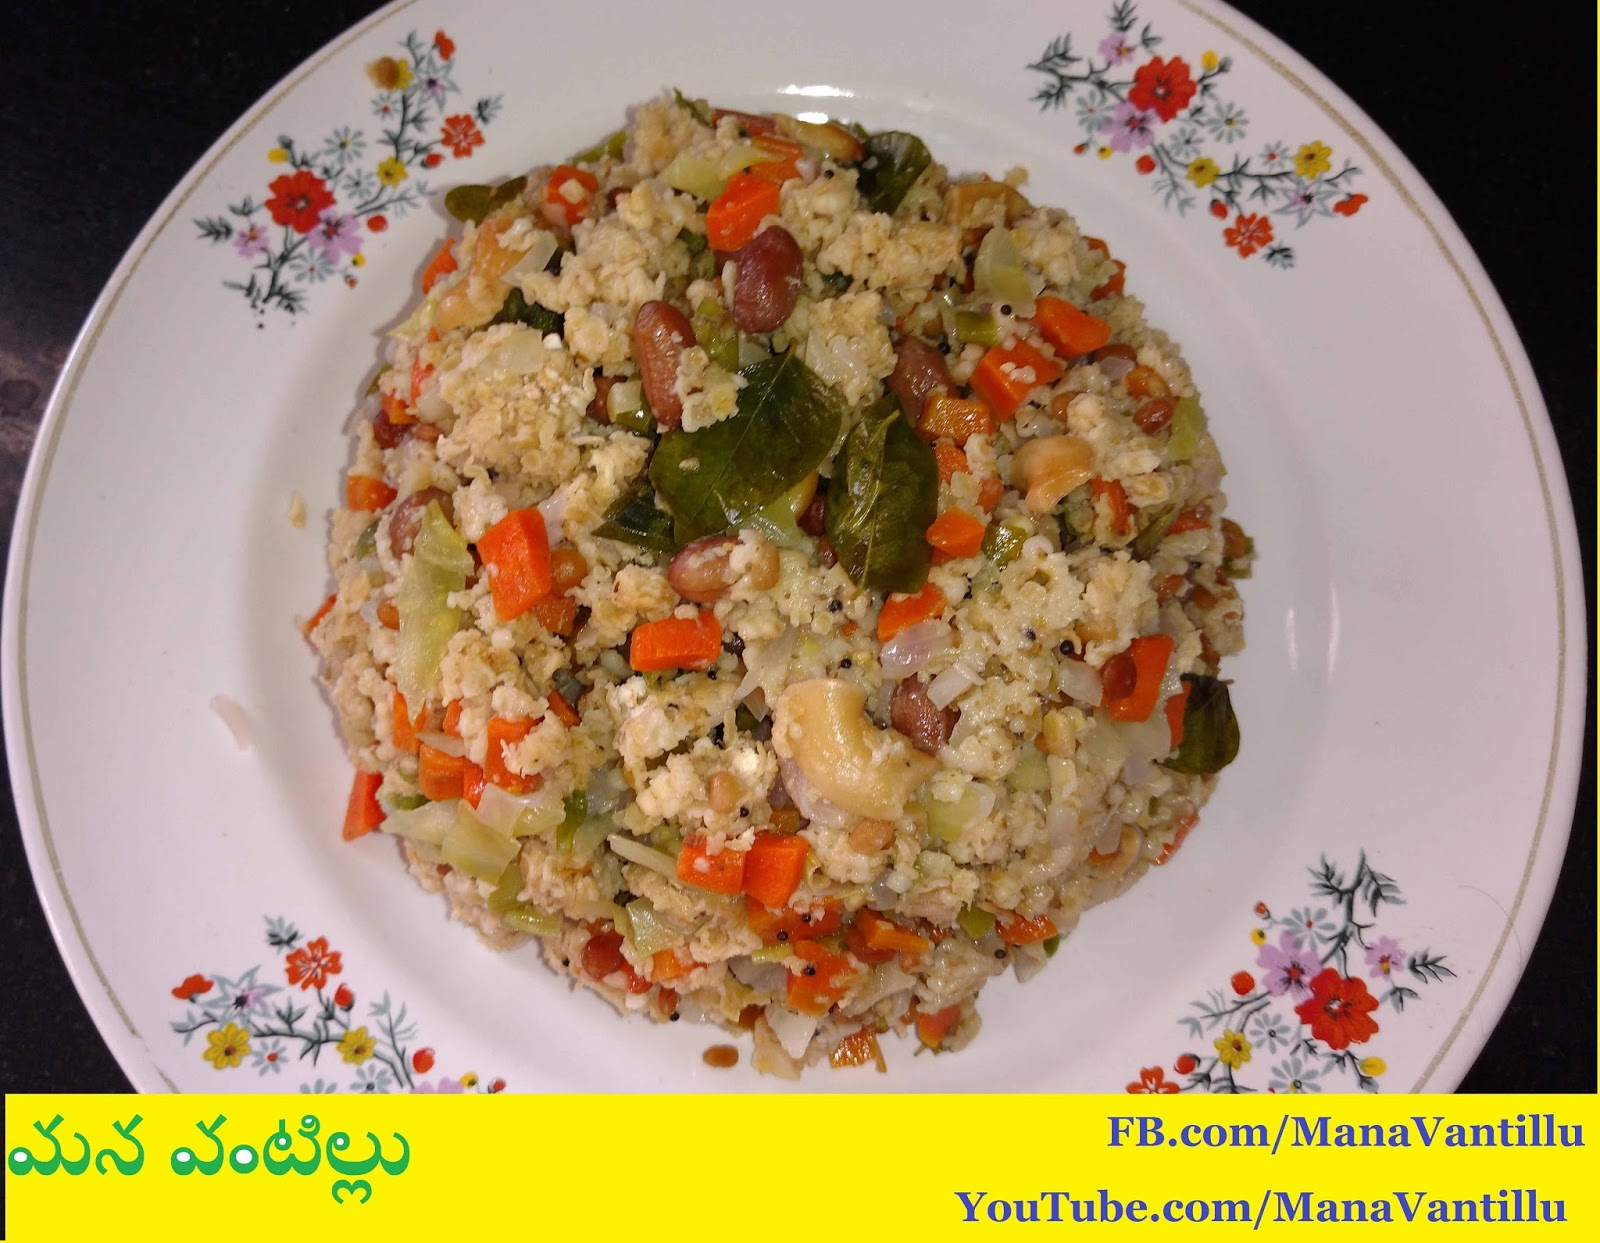 Vegetable oats upma breakfast recipe in telugu after a minute remove the lid and check upma if oats are cooked turn off the flame and take upma into a serving bowl now the tasty and healthy oats upma ccuart Image collections